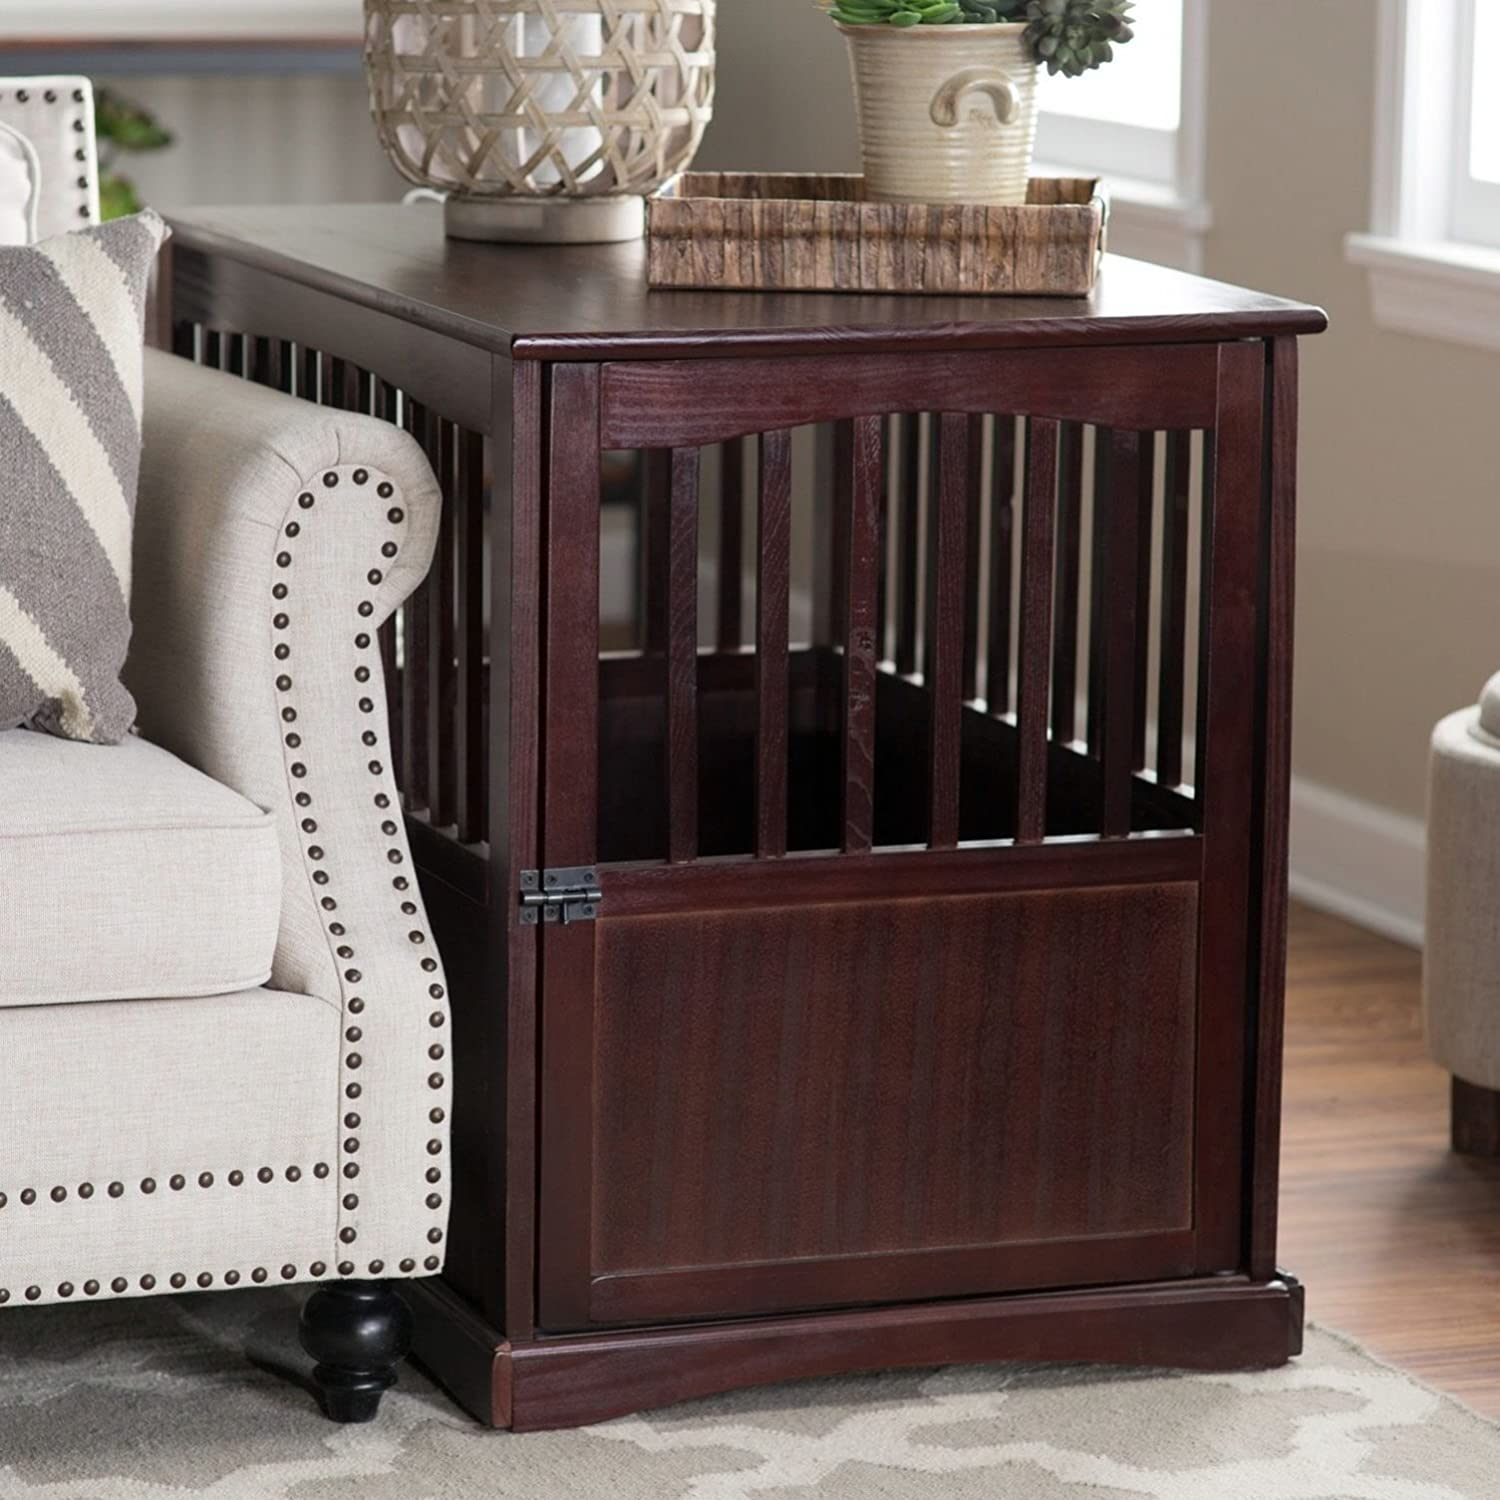 Amazon.com: Dog Crate Kennel Cage Bed Night Stand End Table Wood Furniture  Cave House Room Medium / Dark Brown.: Pet Supplies